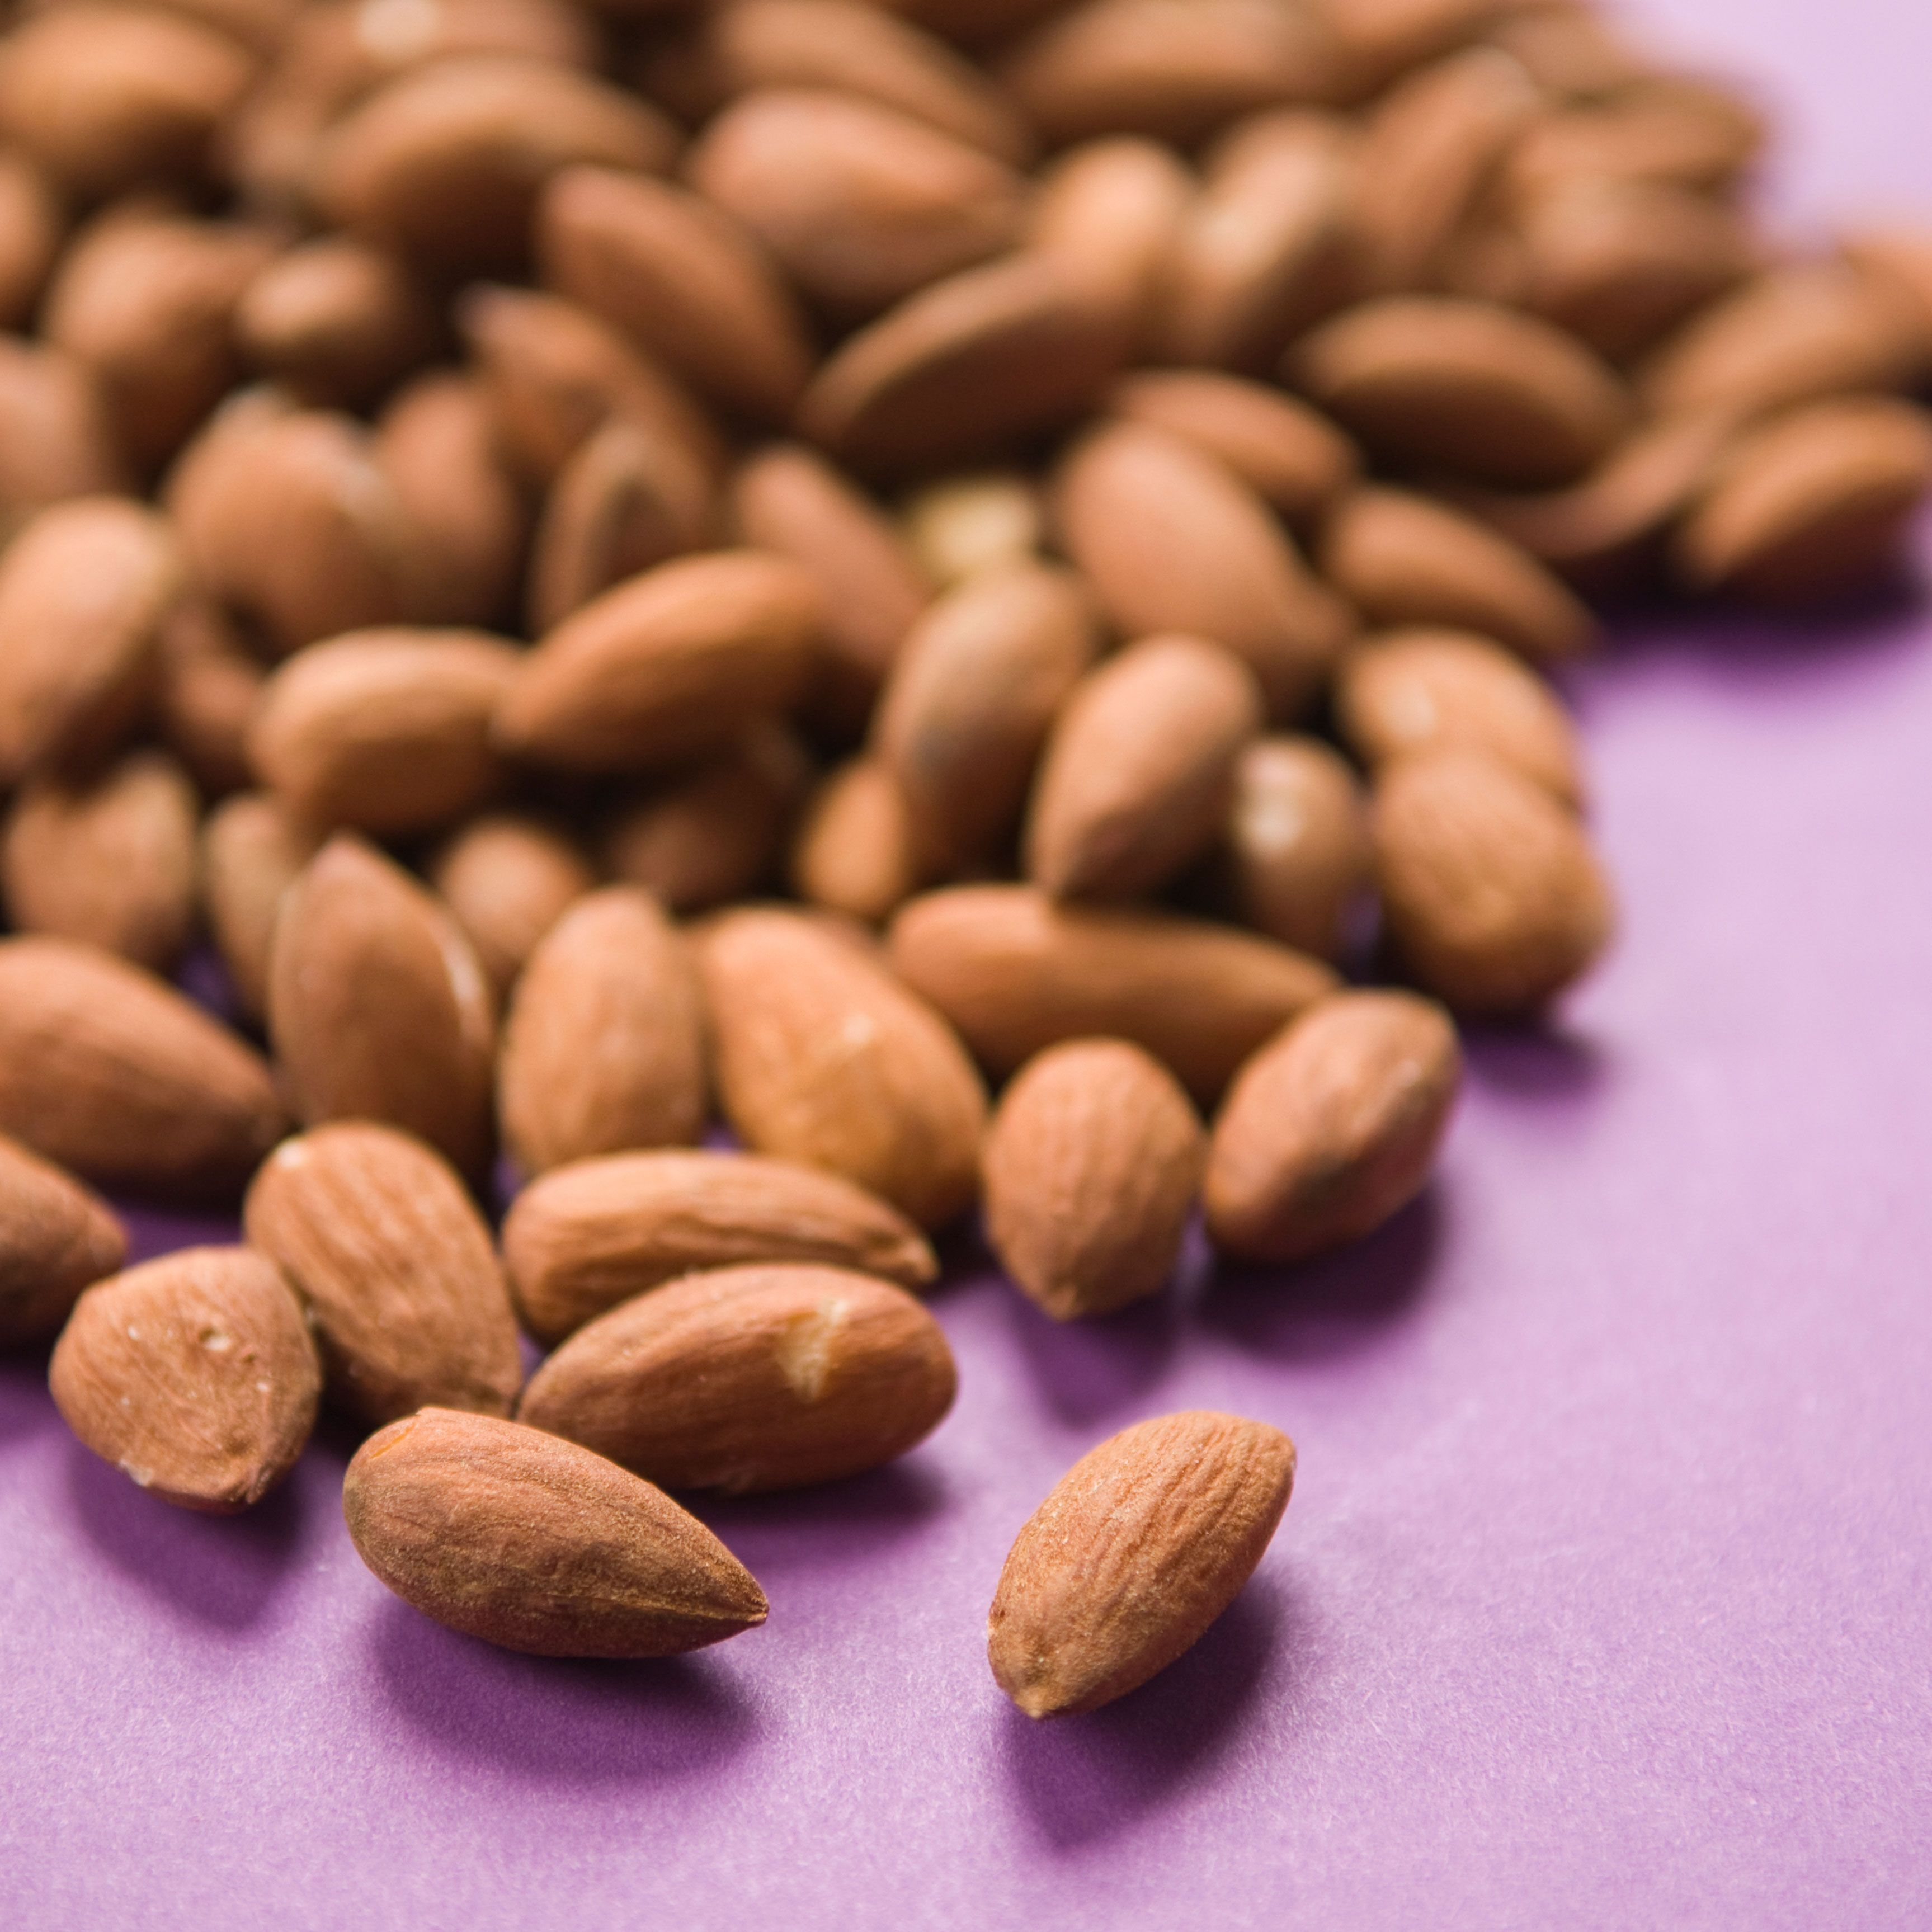 35 All-Natural Energy-Boosting Foods - Natural Energy